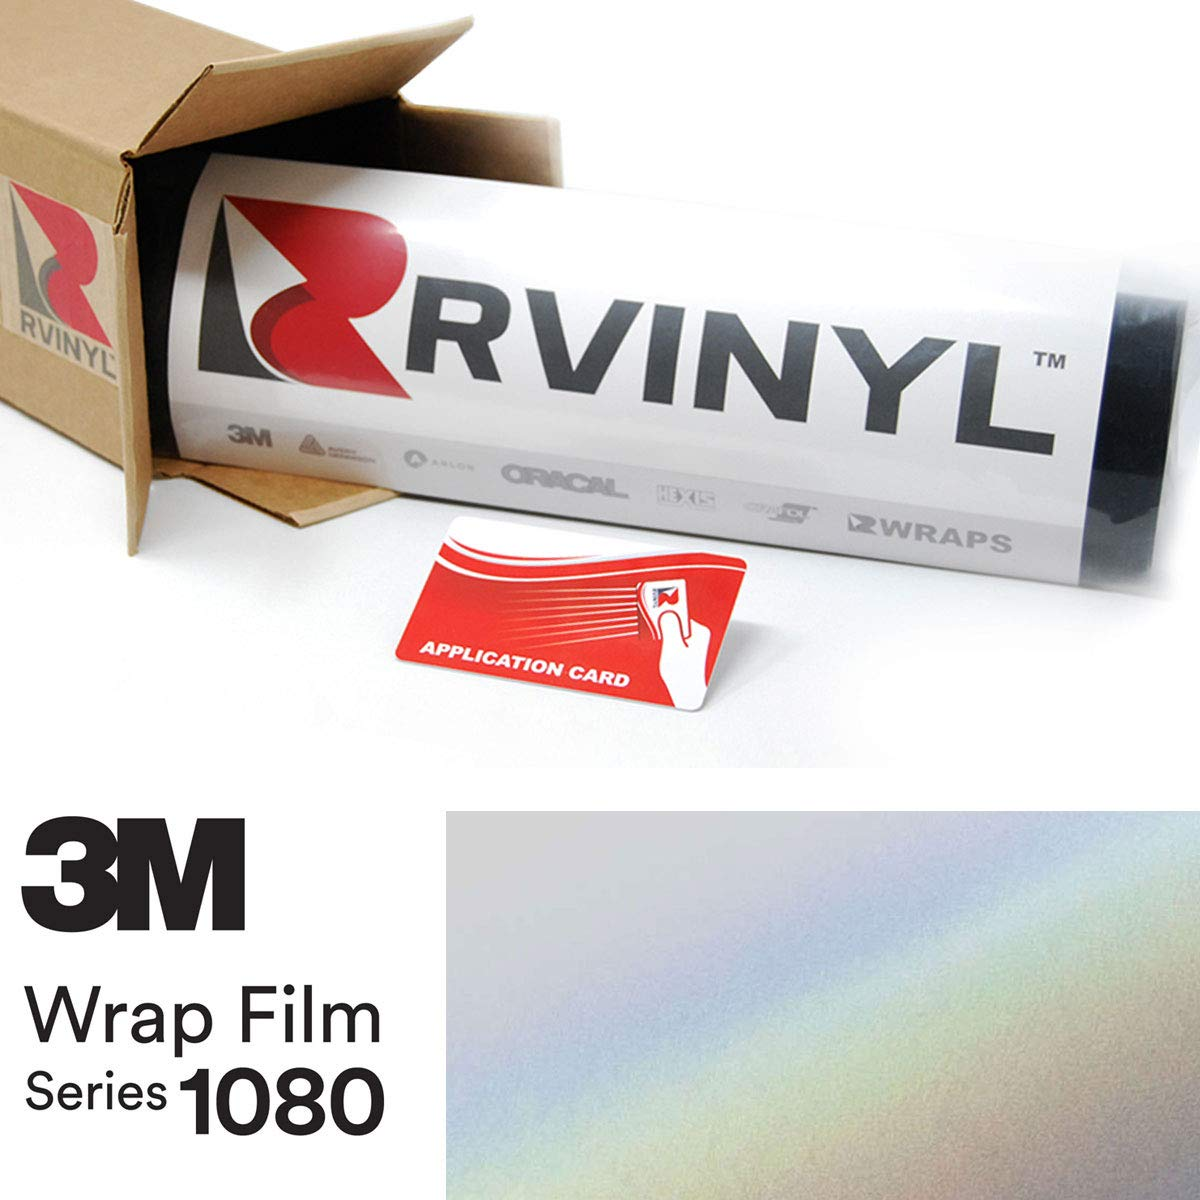 Vinyl Vehicle Car Wrap Film Sheet Roll Rvinyl 3M 1080 SP280 Satin FLIP Ghost Pearl 4in x 6in Sample Size